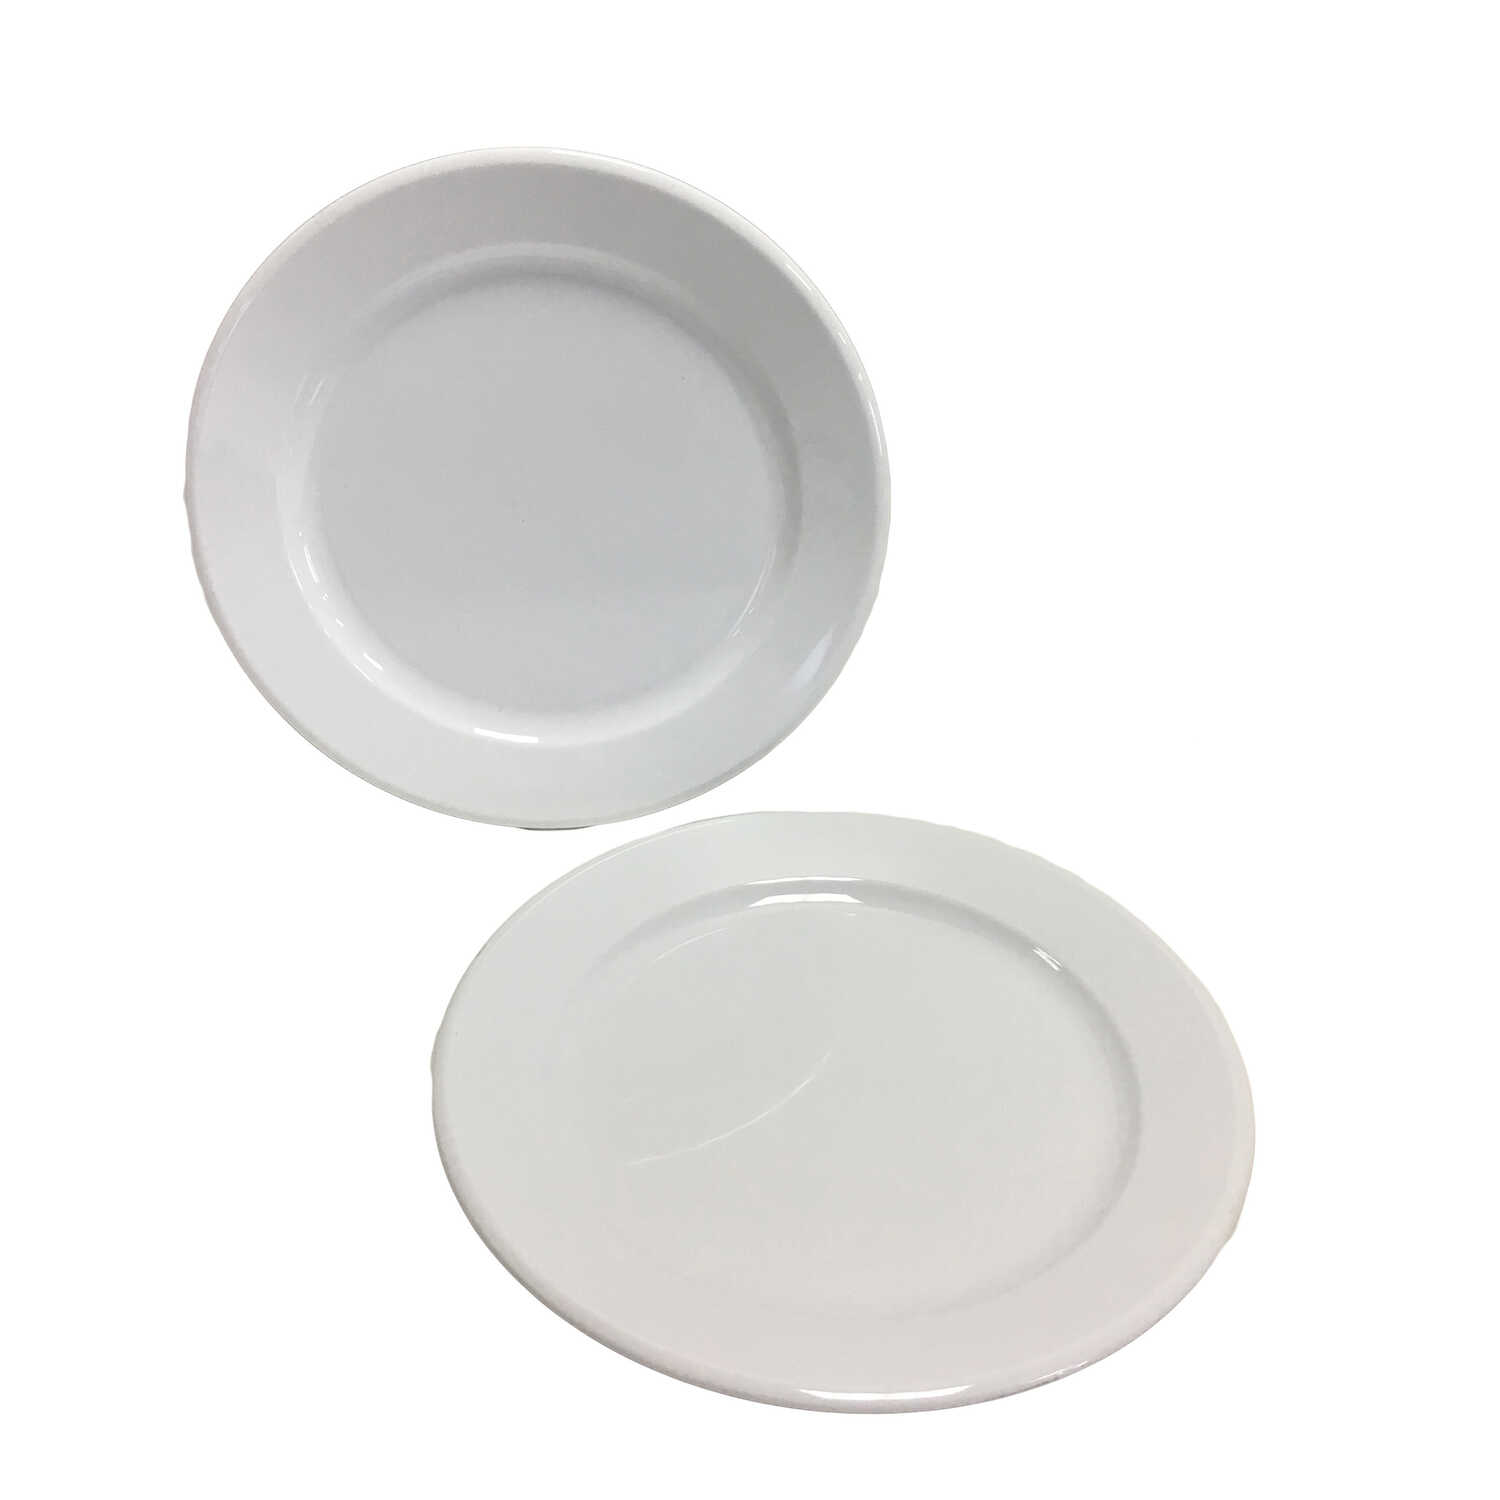 Arrow Home Products  Partyware  White  Acrylic  Round  Plate  1 pk